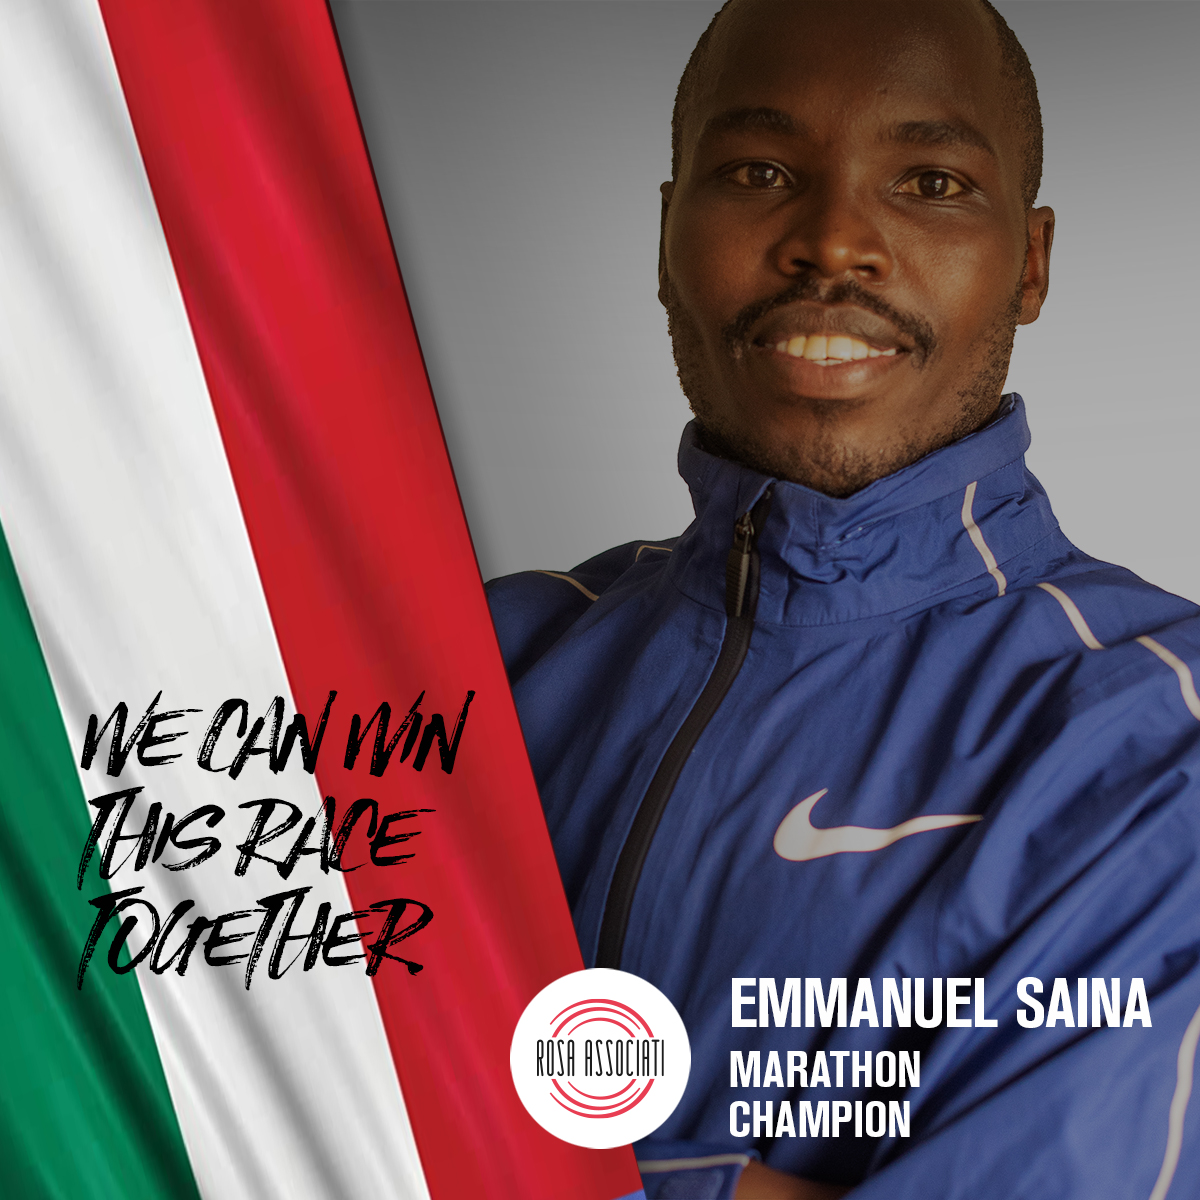 21 2020 - Campagna social We can win this race together-Emmanuel Saina